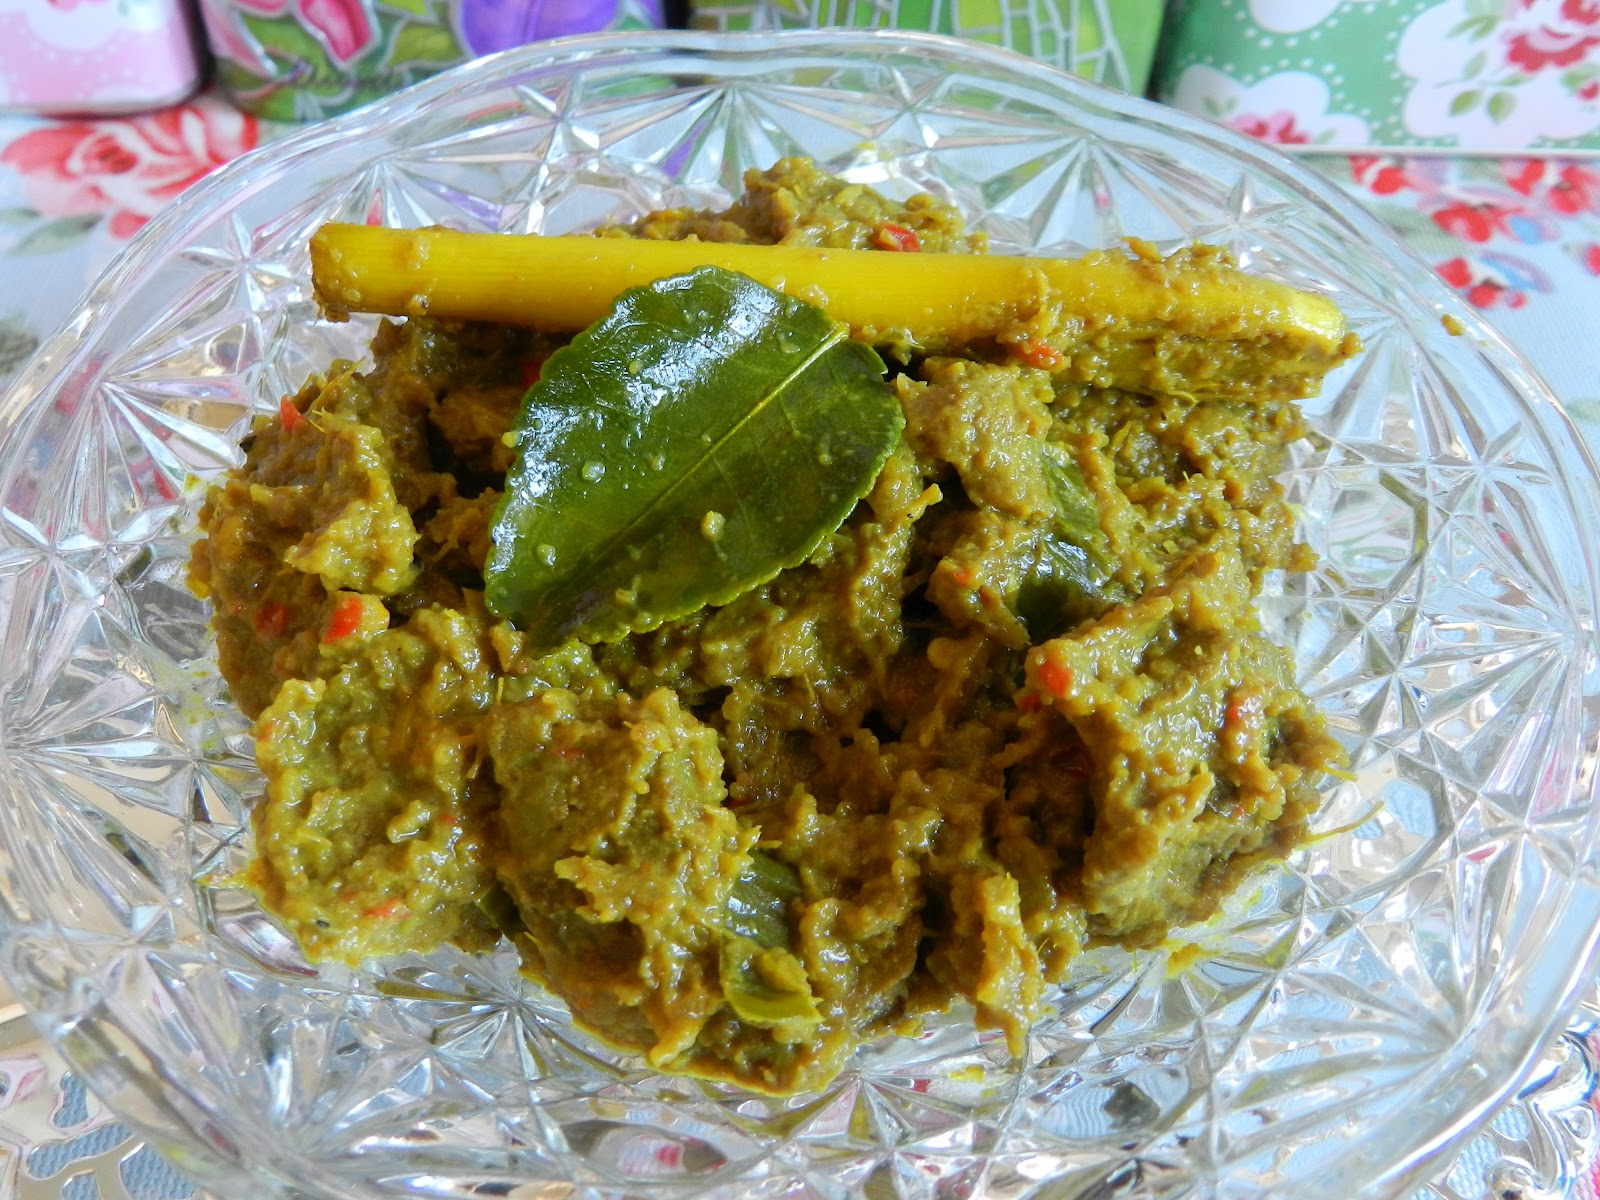 Taste of Love: Rendang Daging Cili Api